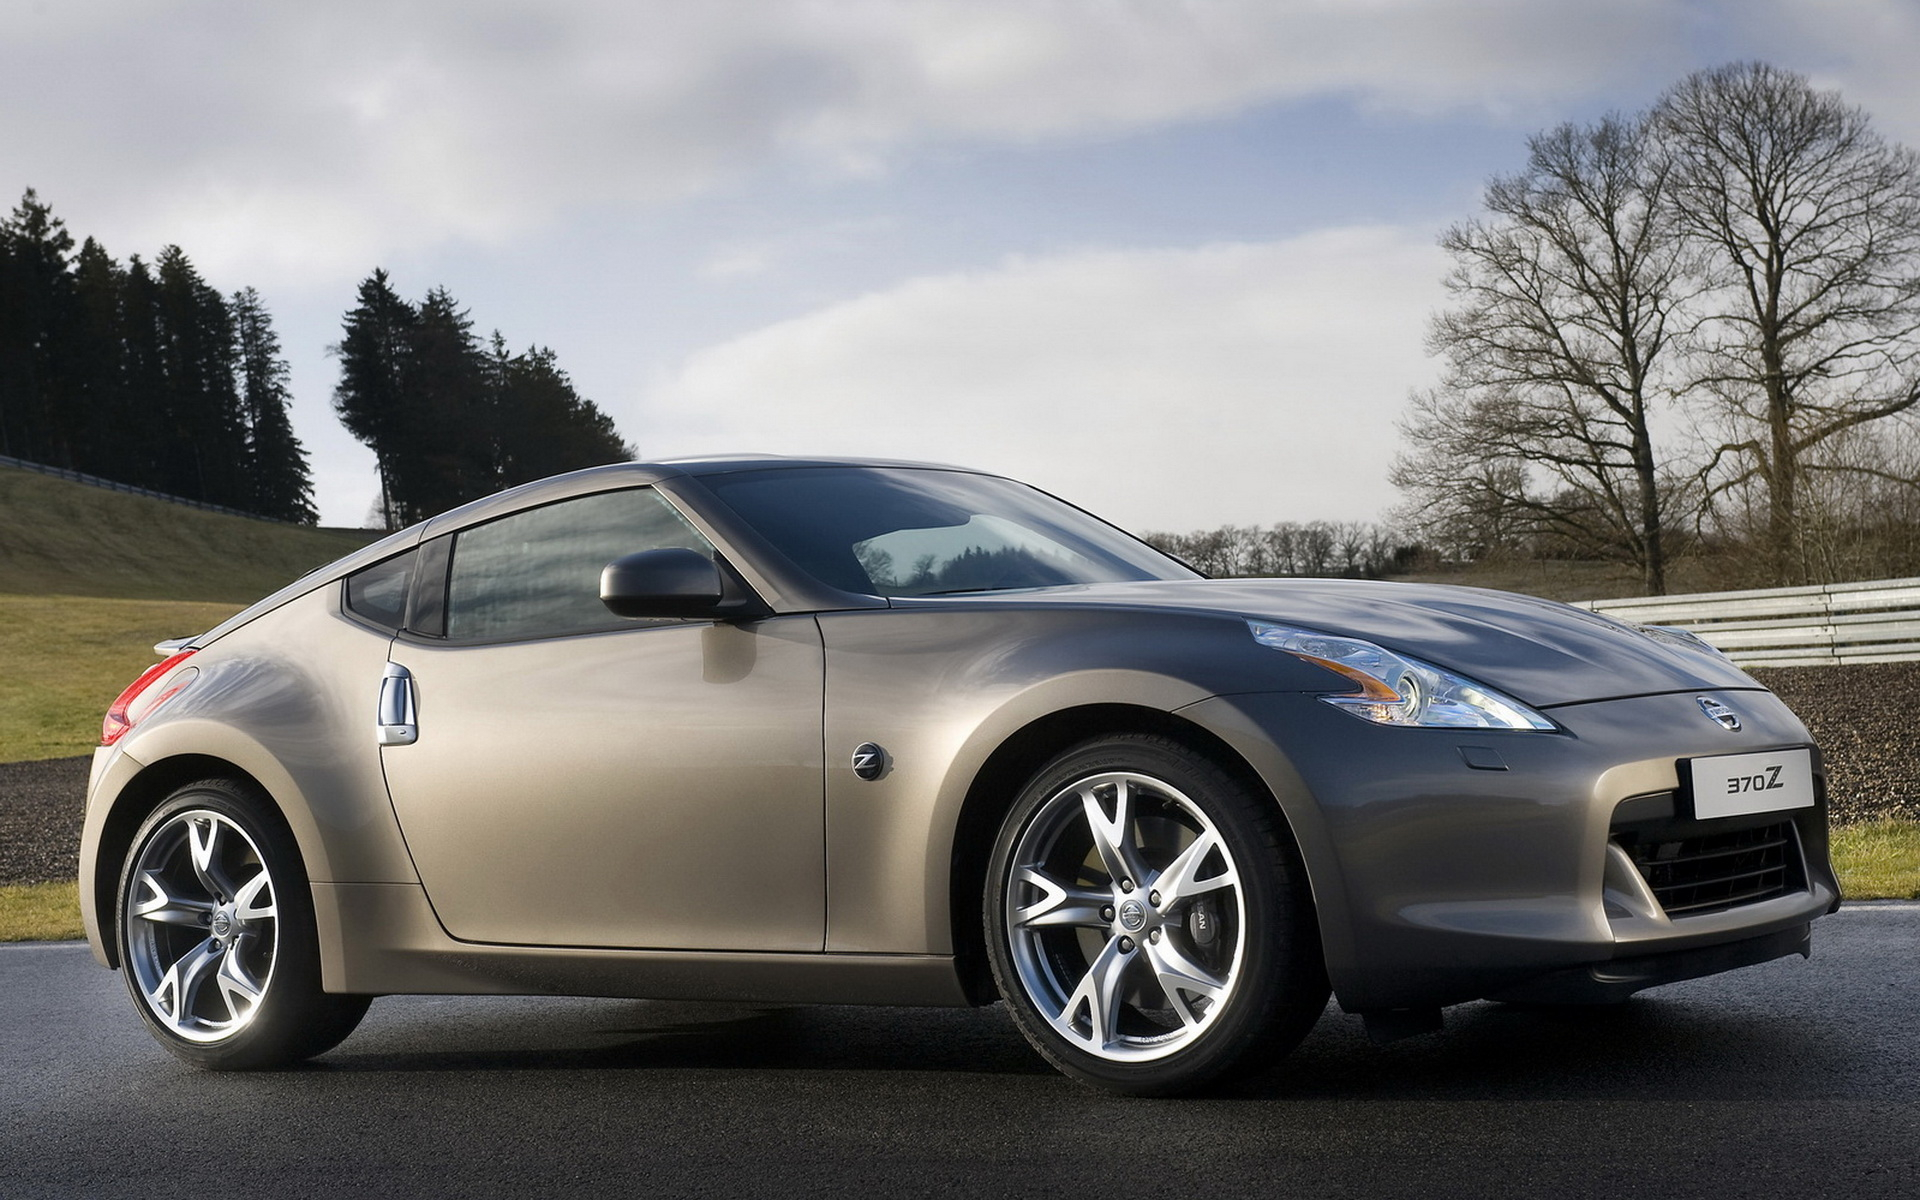 New Nissan 370z wallpapers and images   wallpapers pictures photos 1920x1200